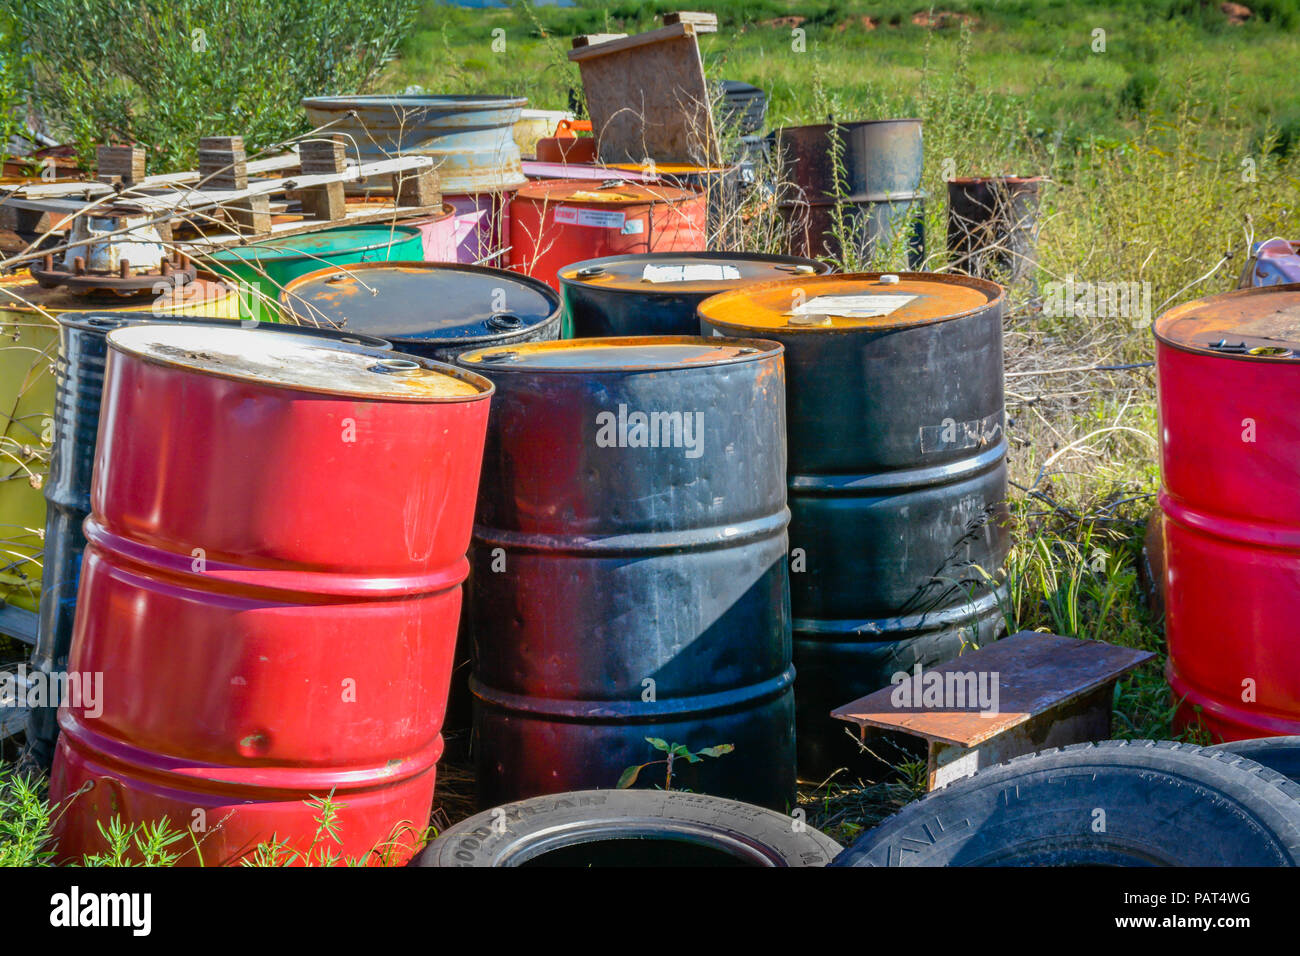 A colorful collection of dumped, old, oil drums in a field of old tires and rusty junk, creating a seemingly hazardous site - Stock Image